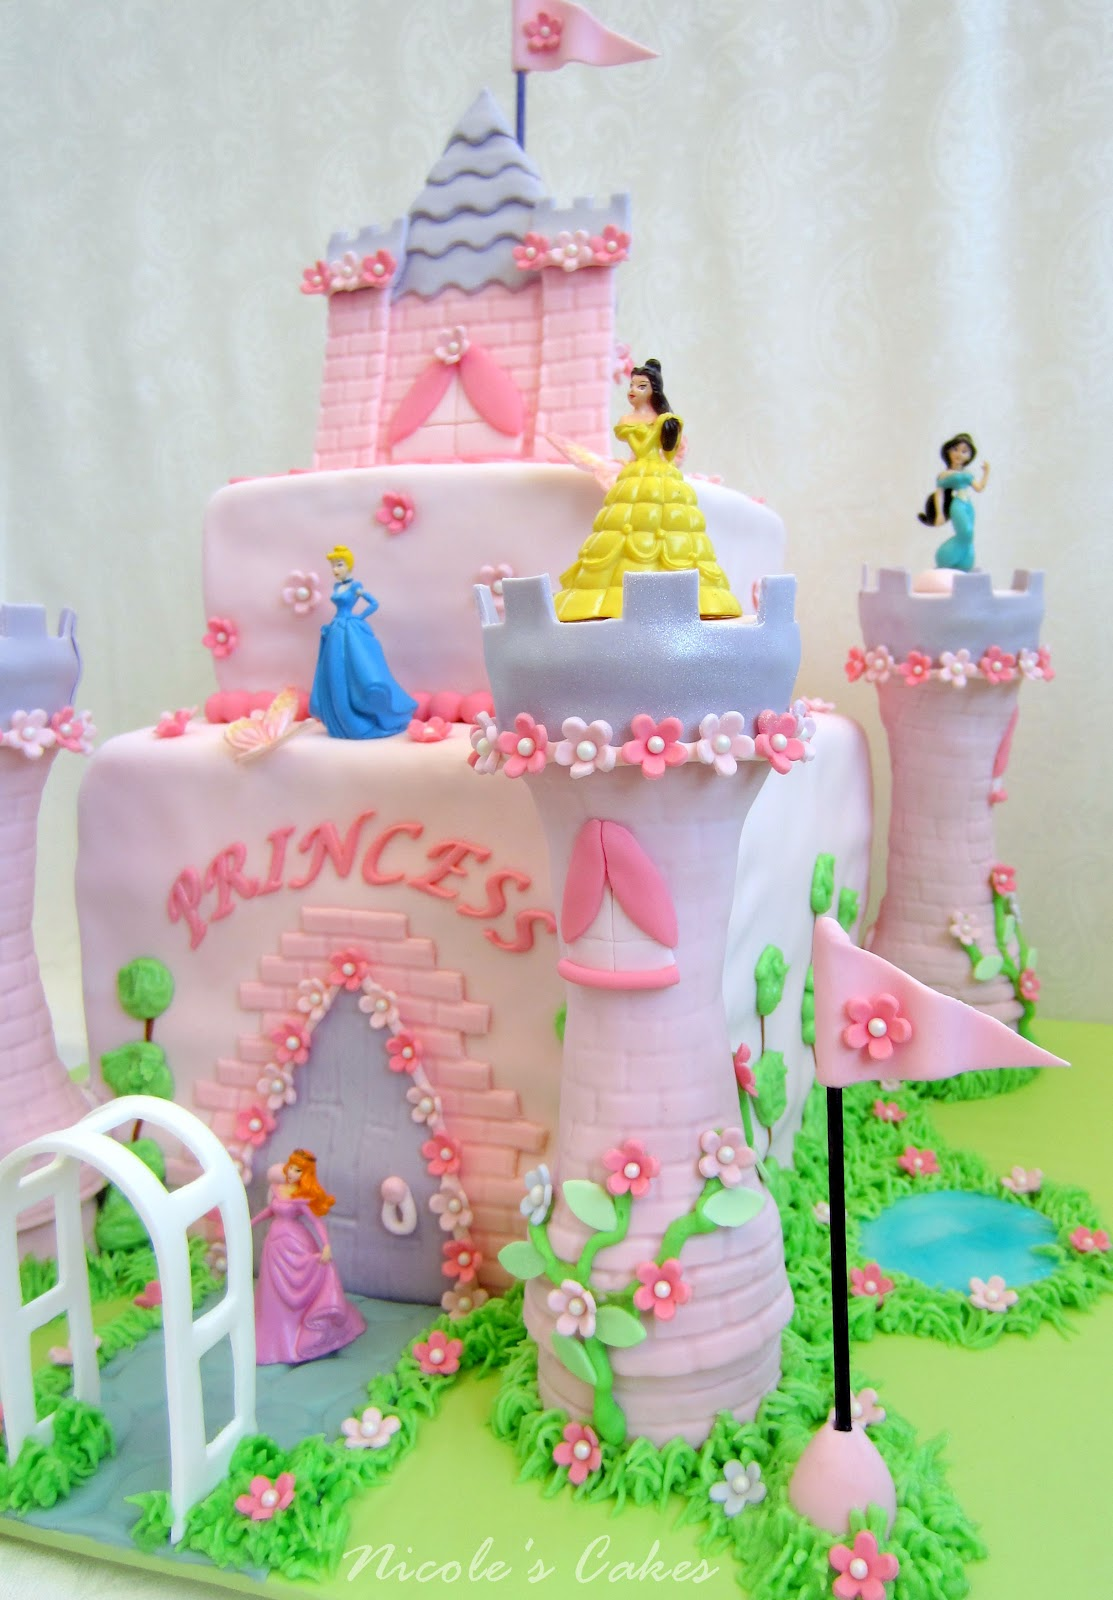 Making A Princess Castle Cake